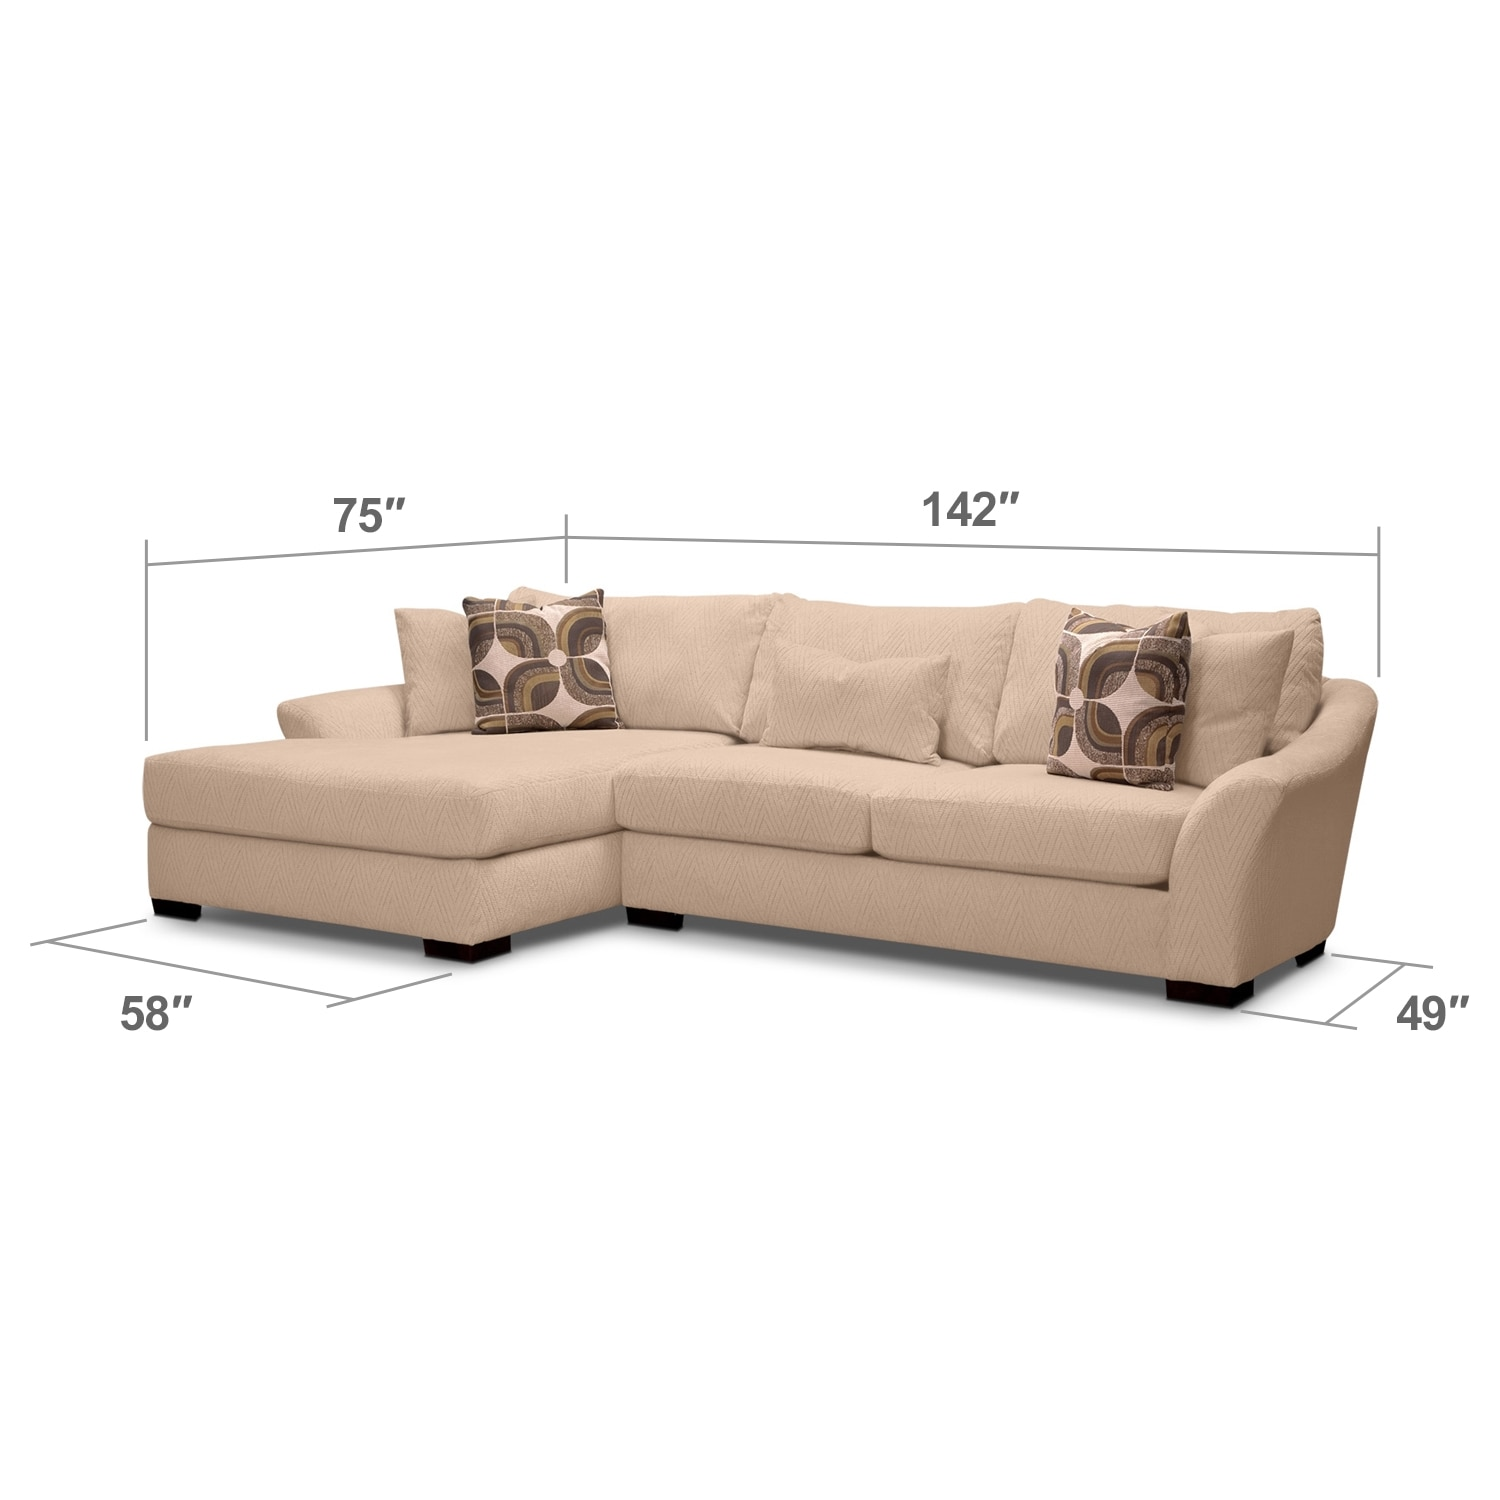 Living Room Furniture - Oasis II 2 Pc. Sectional